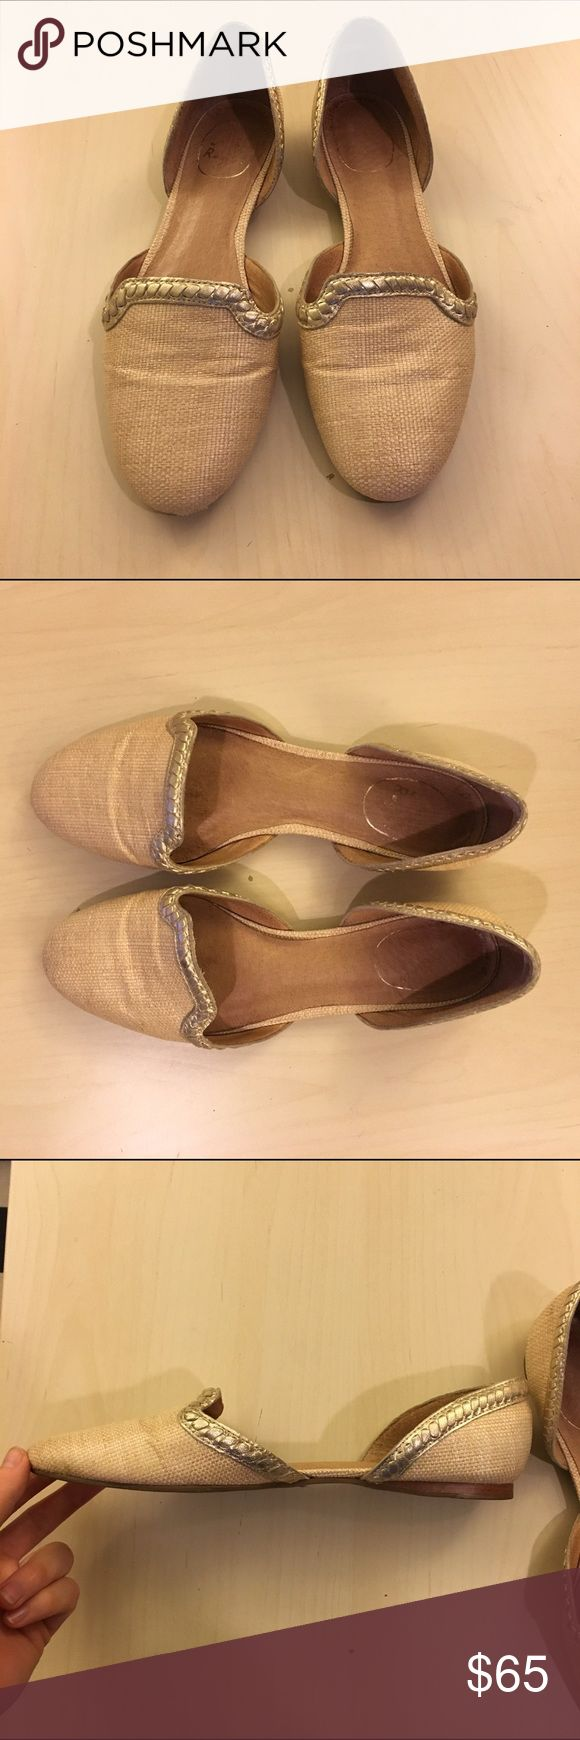 Lightly worn Size 8 woven jack Rogers flats Lightly worn jack Rogers flats. Woven tan and gold accents. Genuine leather interior. Jack Rogers Shoes Flats & Loafers